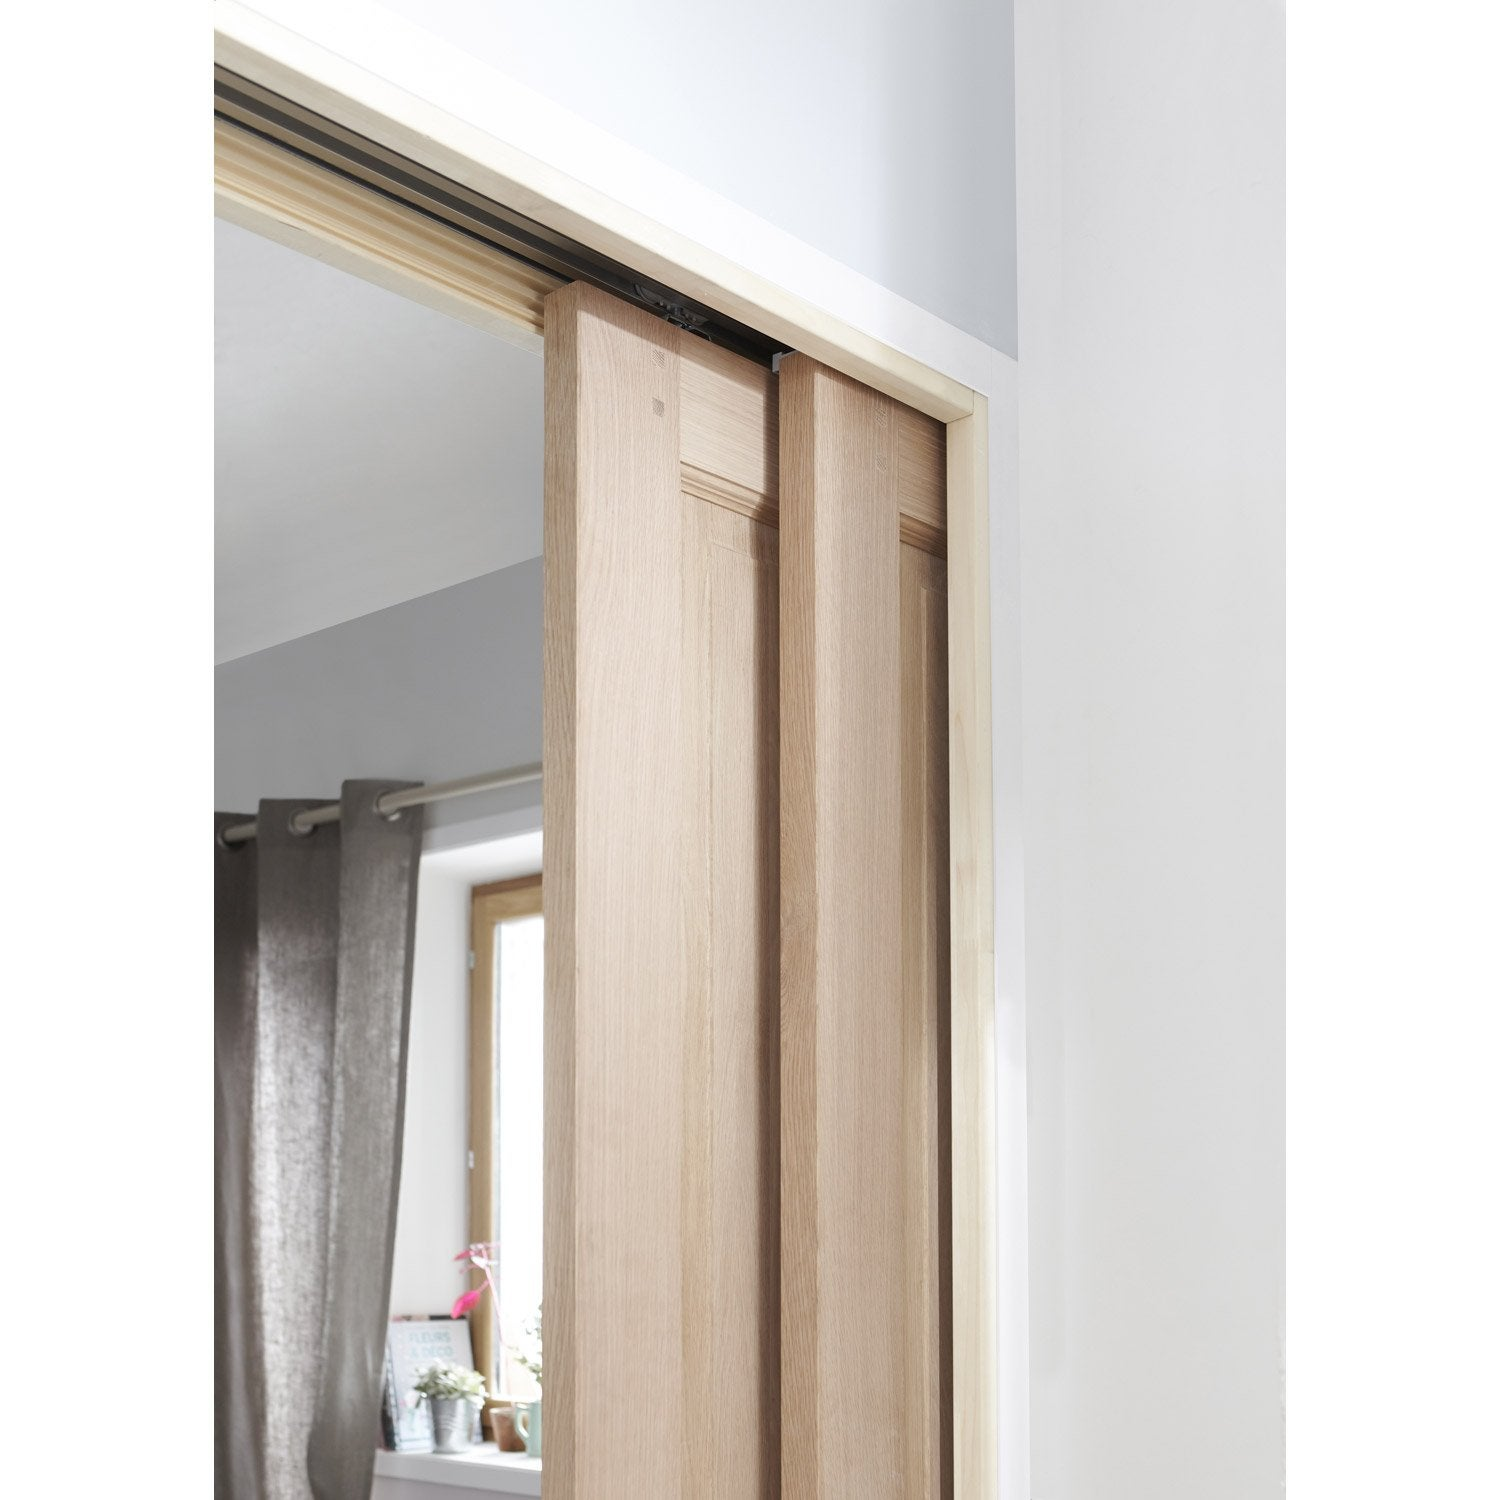 Stunning habillage porte coulissante gallery transform - Kit rail porte coulissante ...